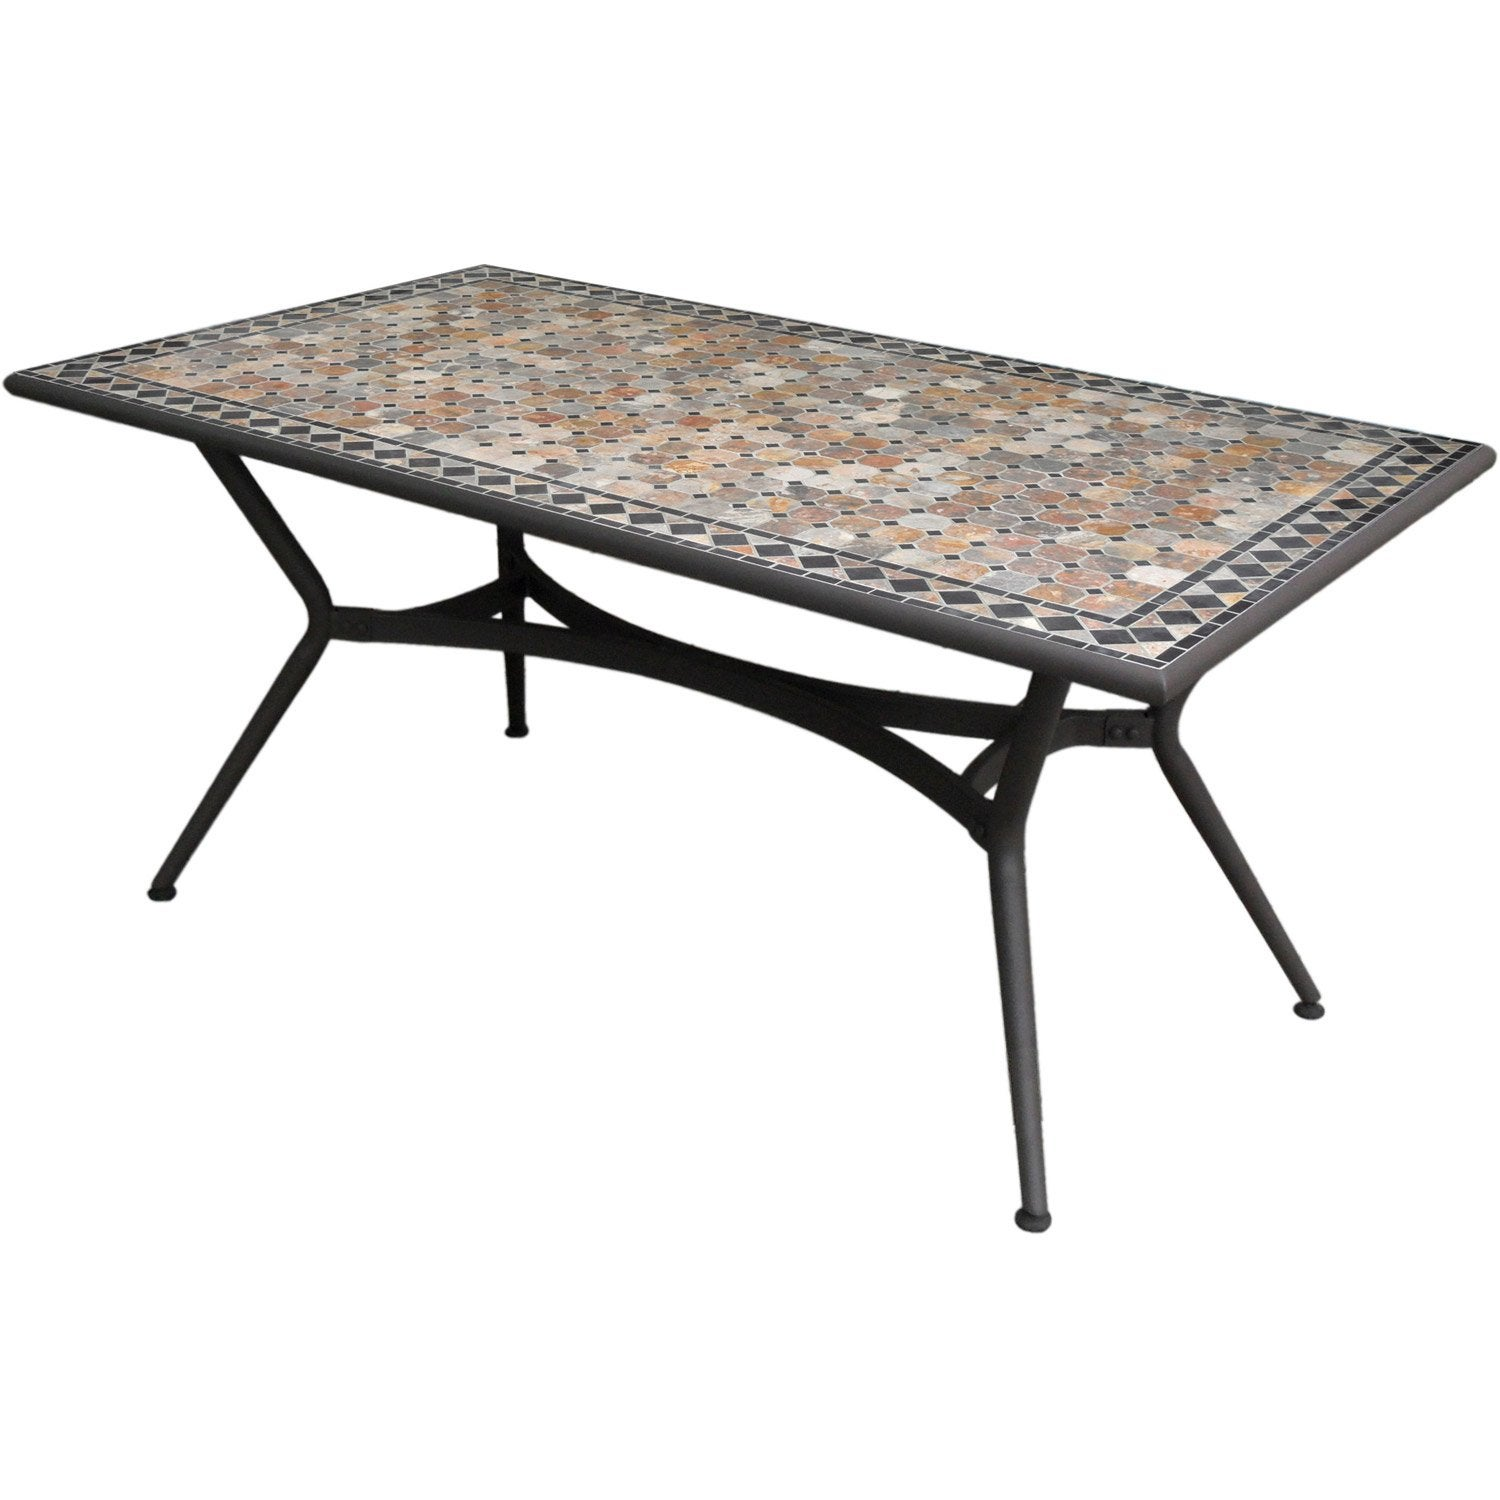 Table de jardin marocco rectangulaire anthracite 6 for Meuble jardin leroy merlin